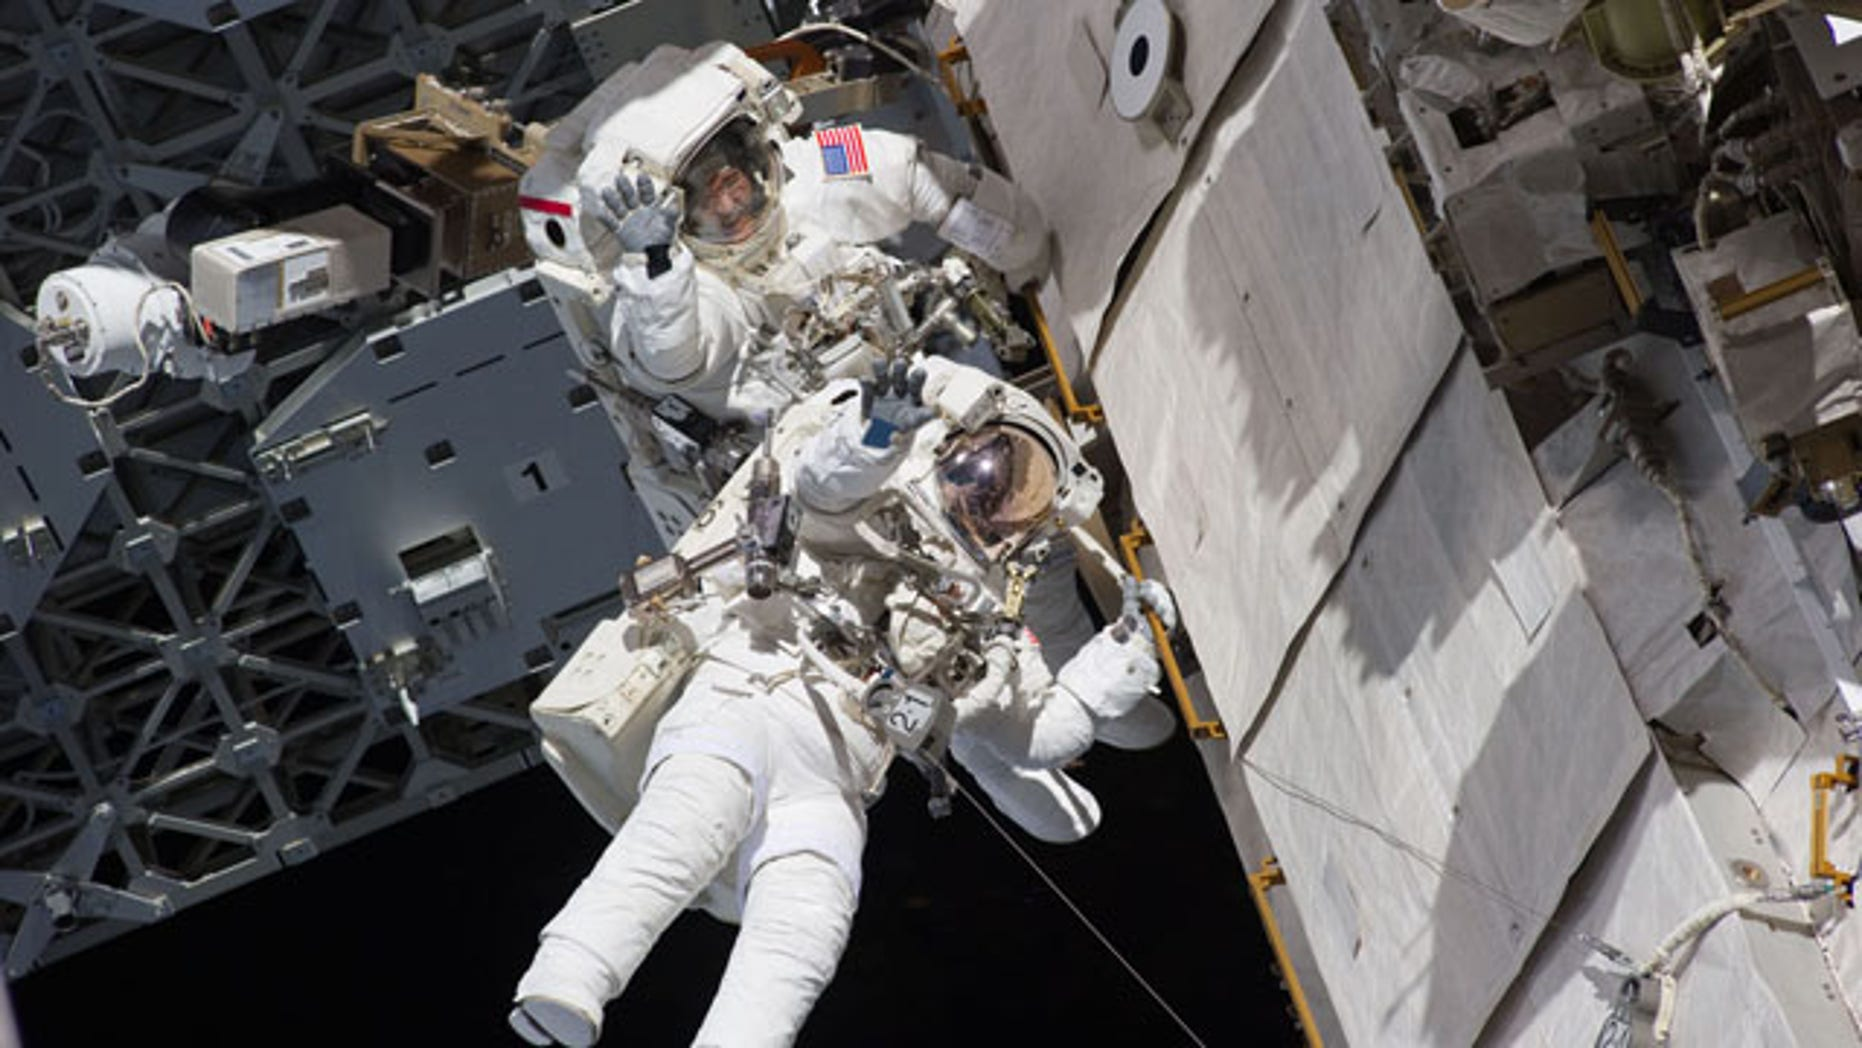 Astronauts Steve Bowen and Alvin Drew wave during the first spacewalk of their STS-133 mission on Feb. 28, 2011 while working outside the International Space Station during the final flight of space shuttle Discovery.